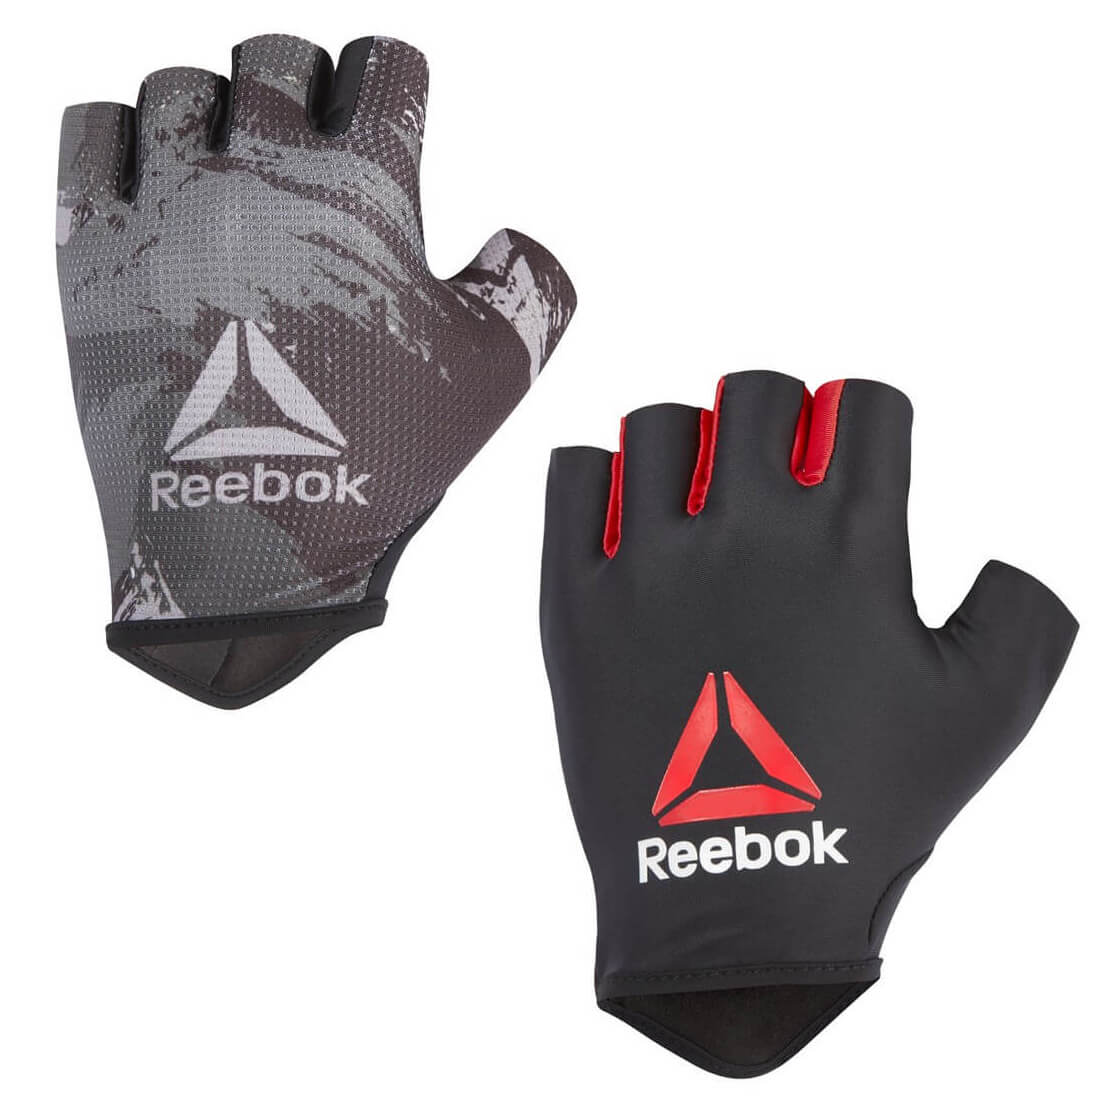 Reebok Mens Training Gloves Weight Lifting Strength Fitness Exercise Gym Workout